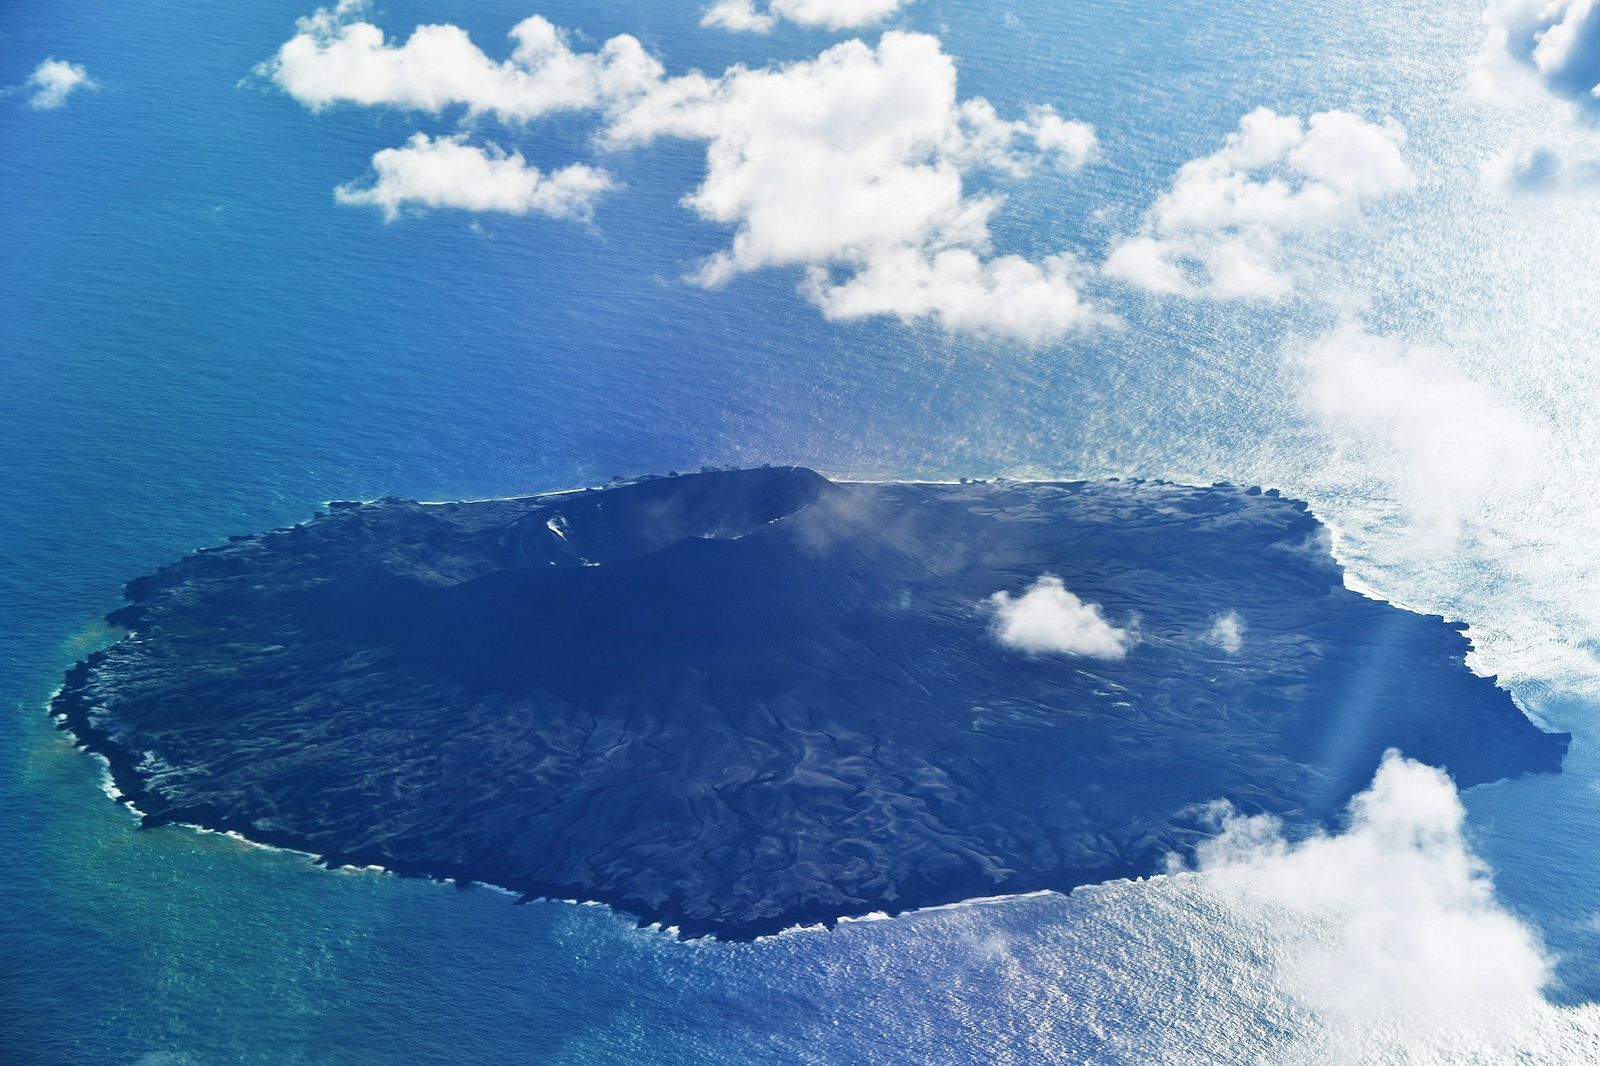 Nishinoshima, seen from the east on 08/16/2021 / 4:02 p.m. during the reconnaissance overflight by the JMA - Doc. 1.kaiho.mlit.go.jp